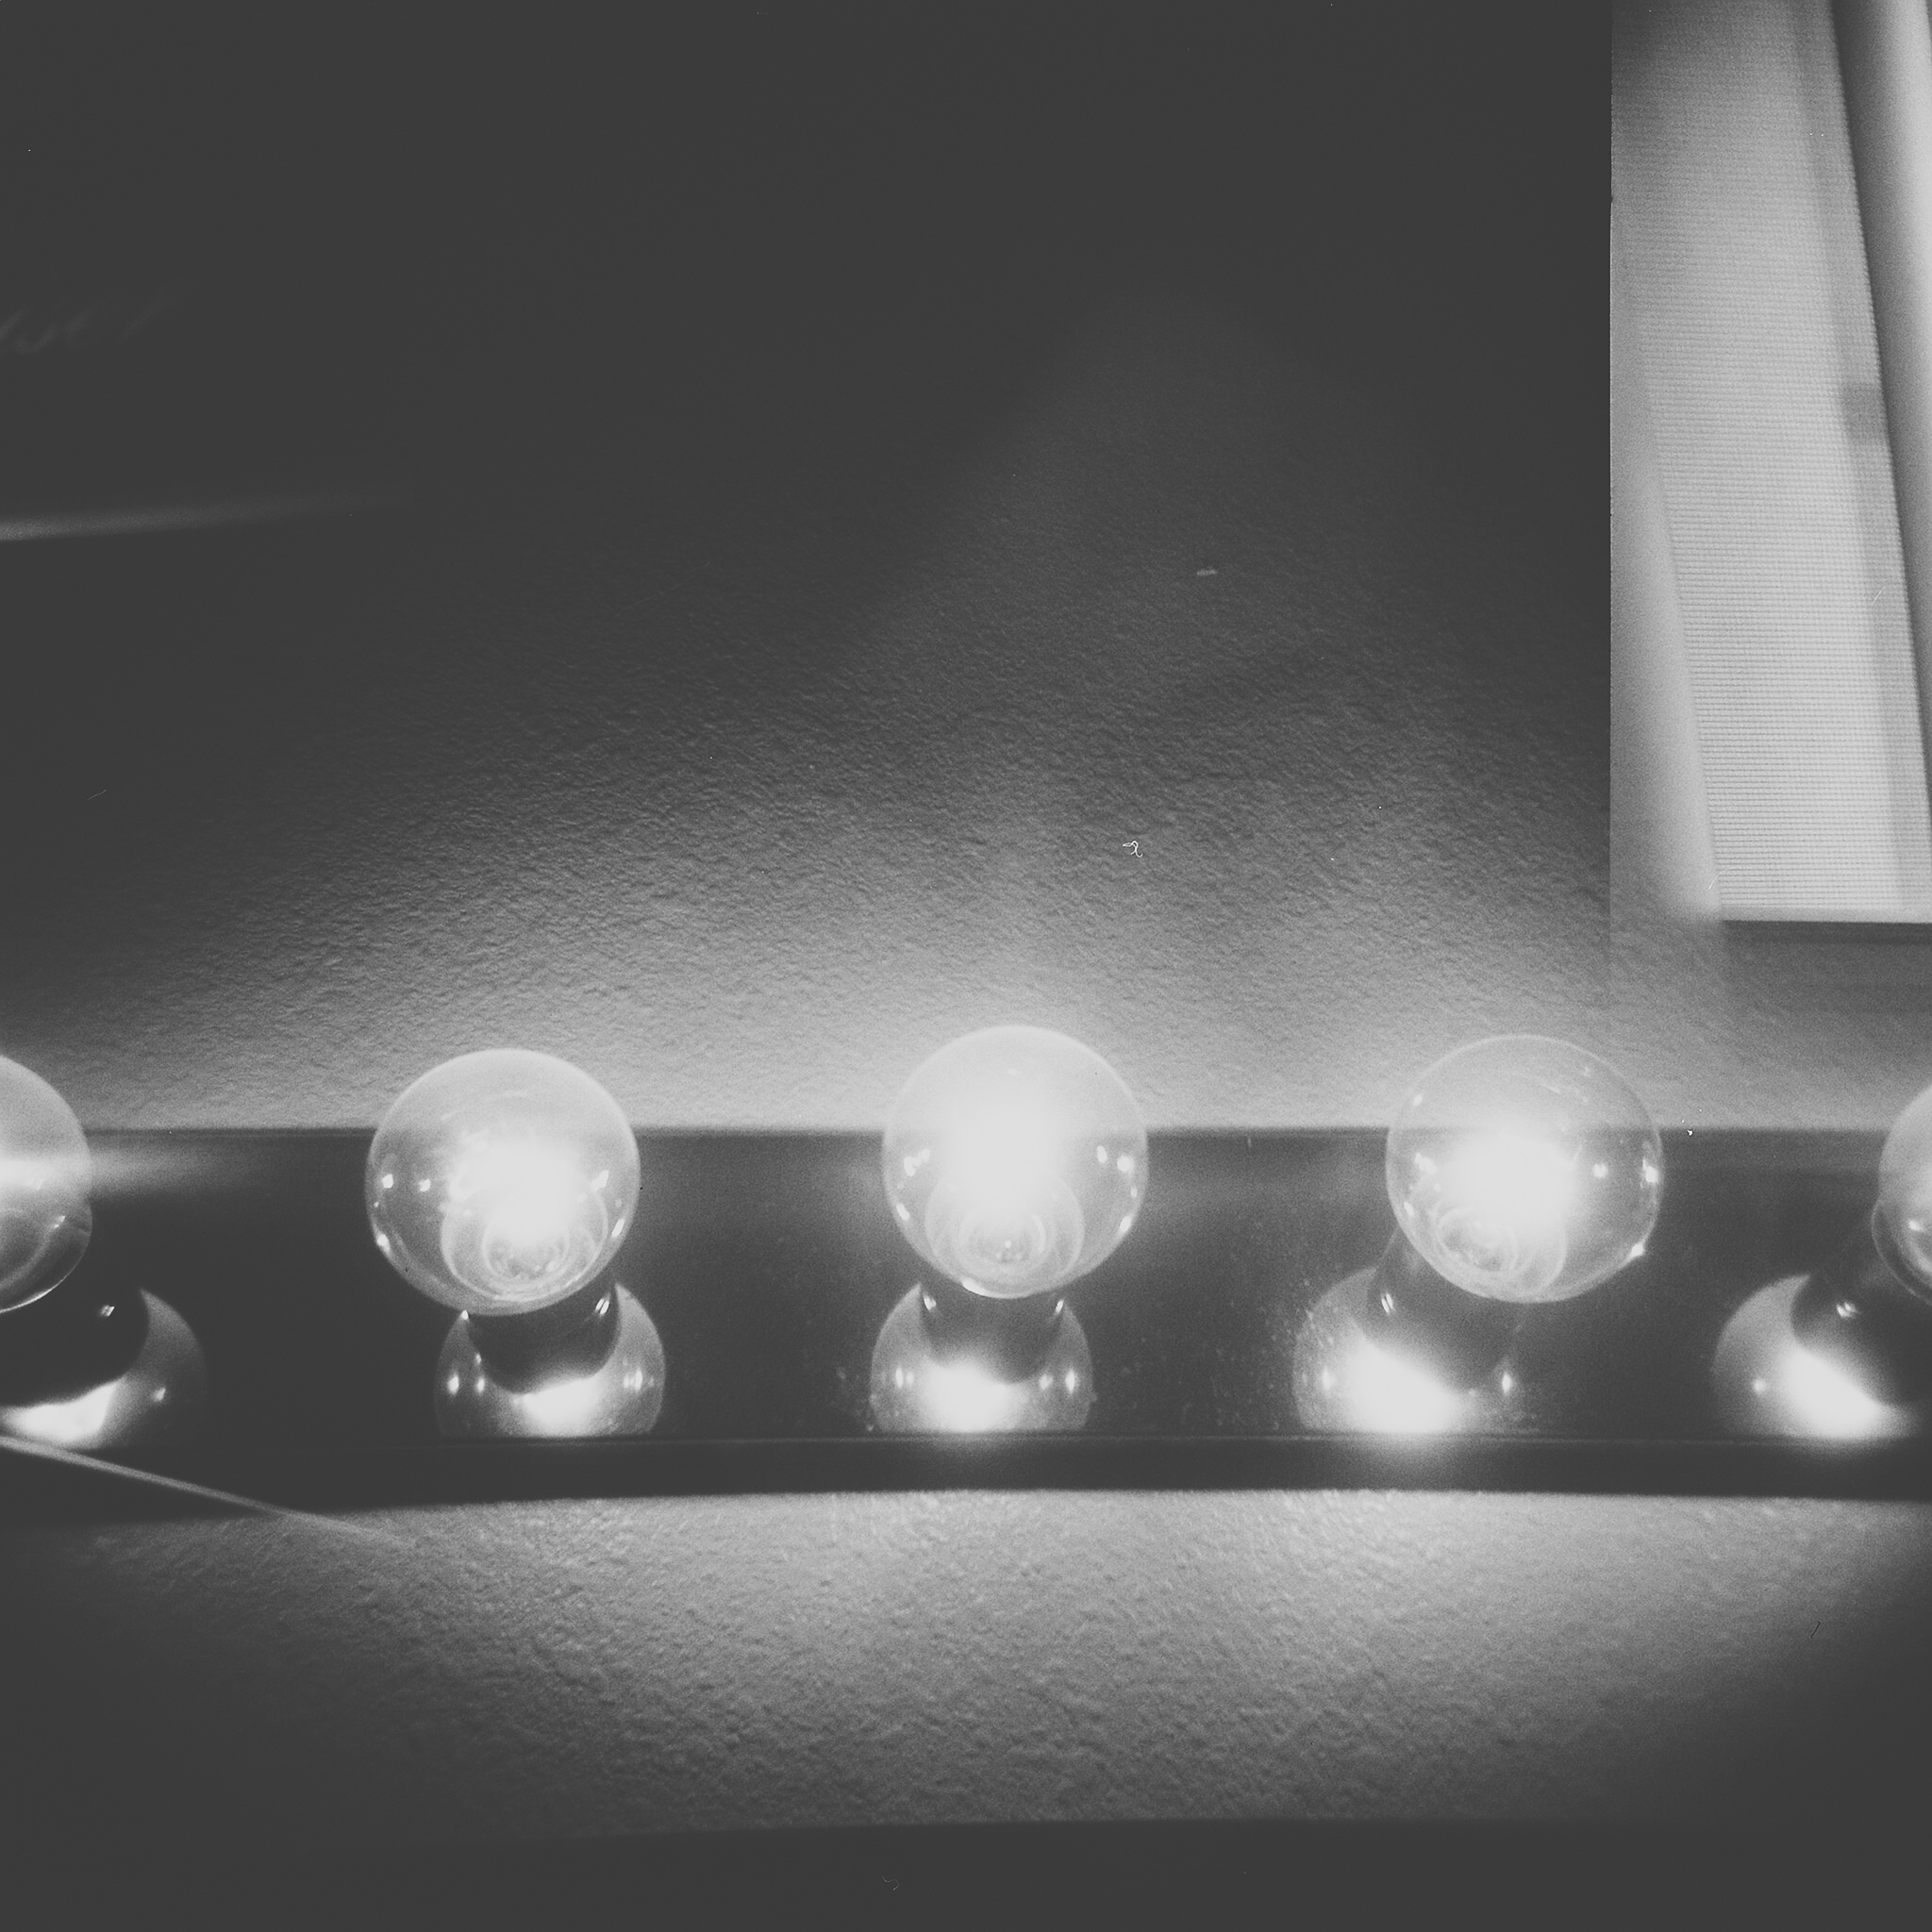 [Image description: black and white photograph of a row of vanity bulbs. There is a very faint image of a face looking straight at the camera layered over the shot, like a weak double exposure.]  Holly Lay / Creative Commons